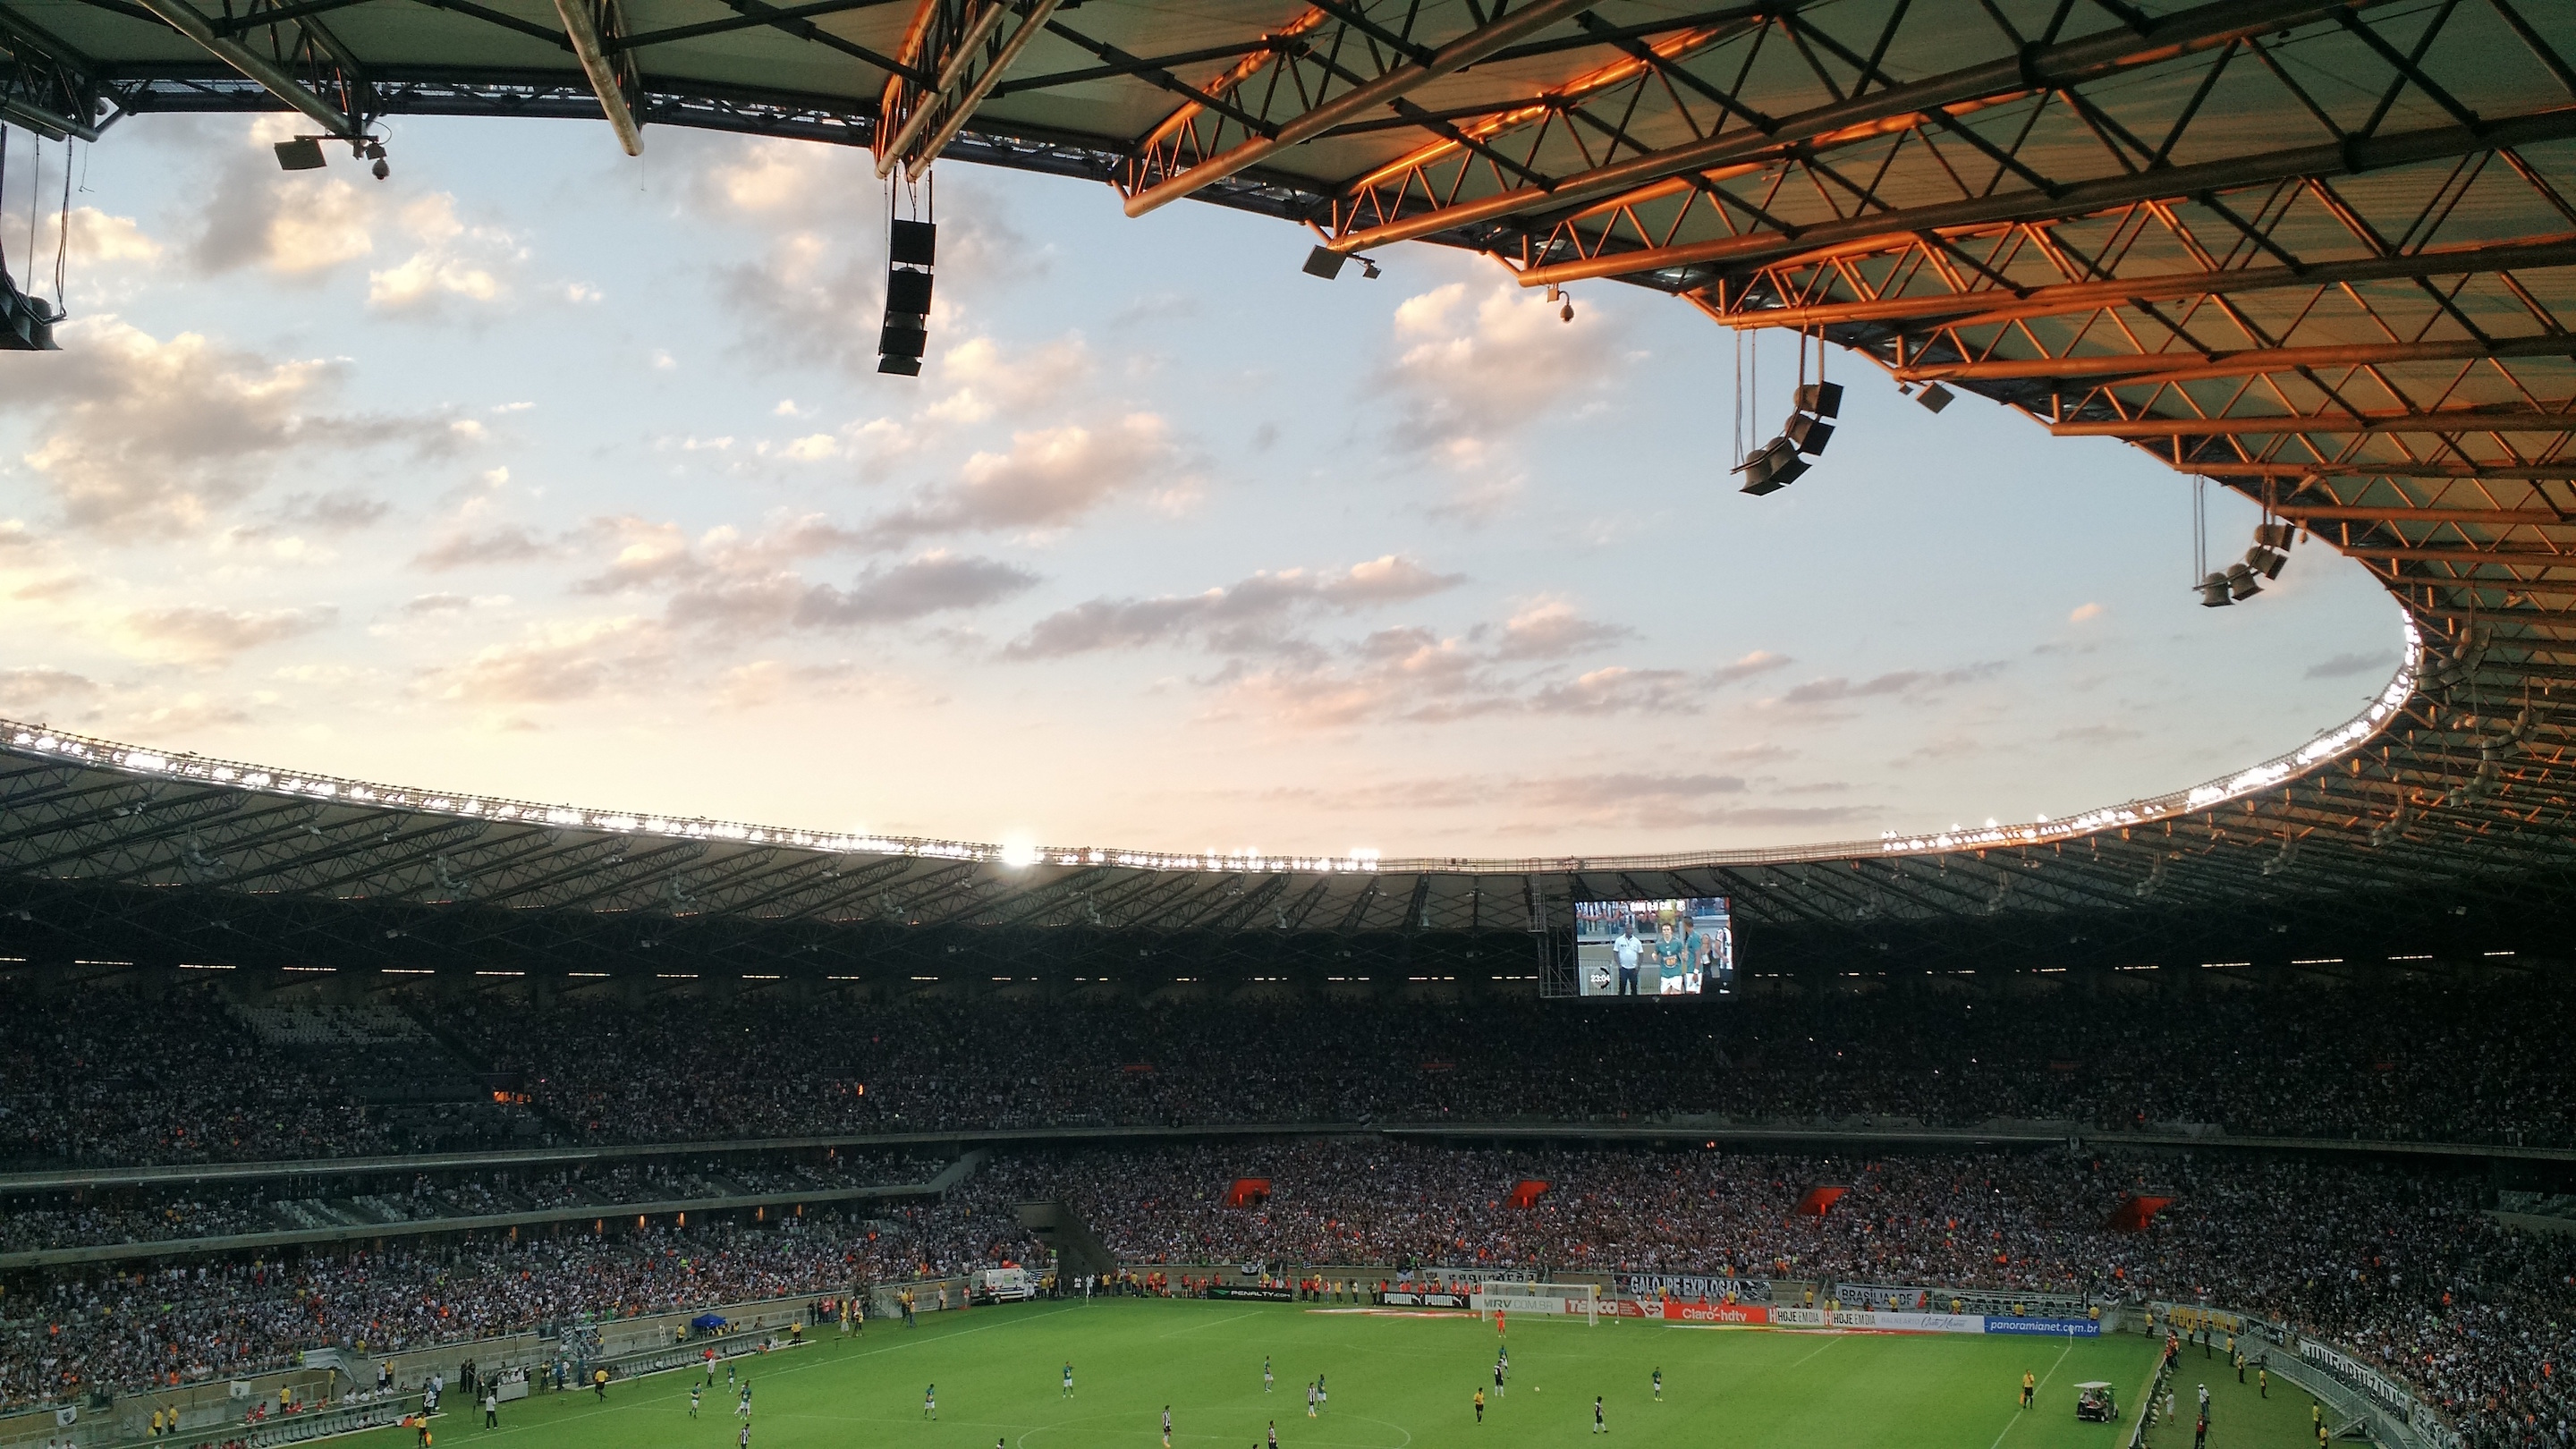 View from the stands in Stadium. The Cross Language Processing help the crowd to understand what happen through display